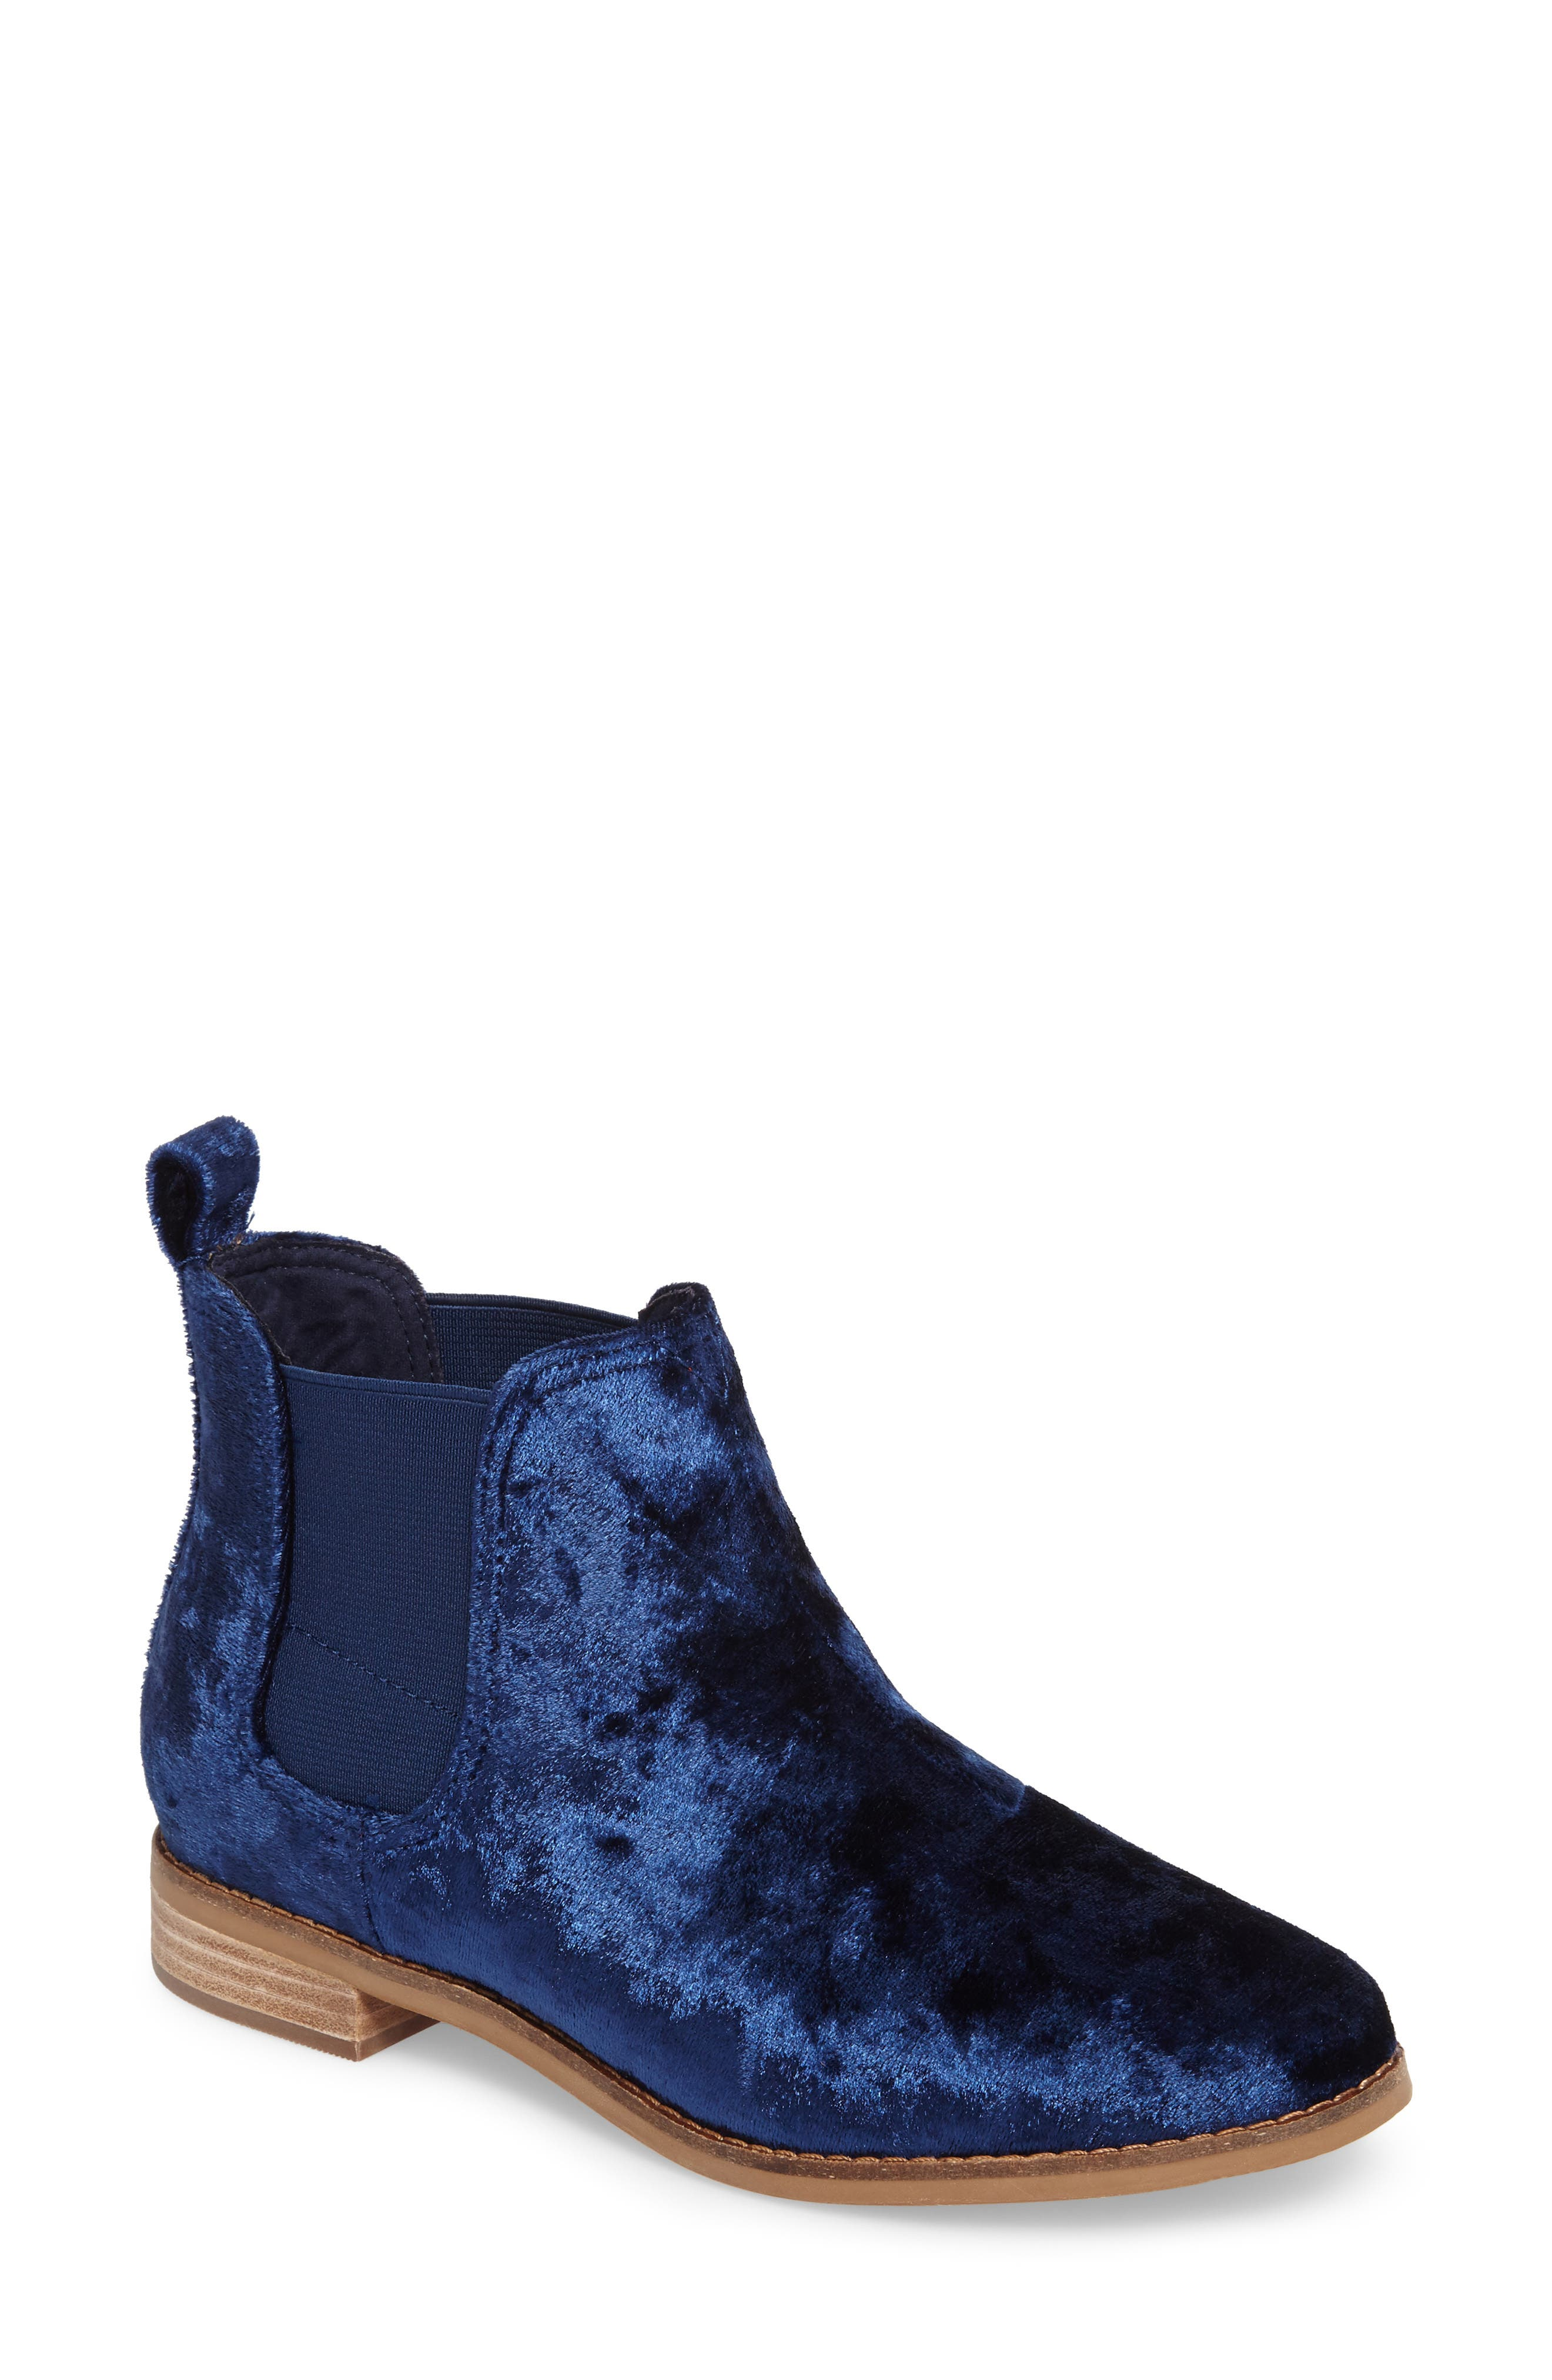 Ella Bootie,                         Main,                         color, Navy Fabric